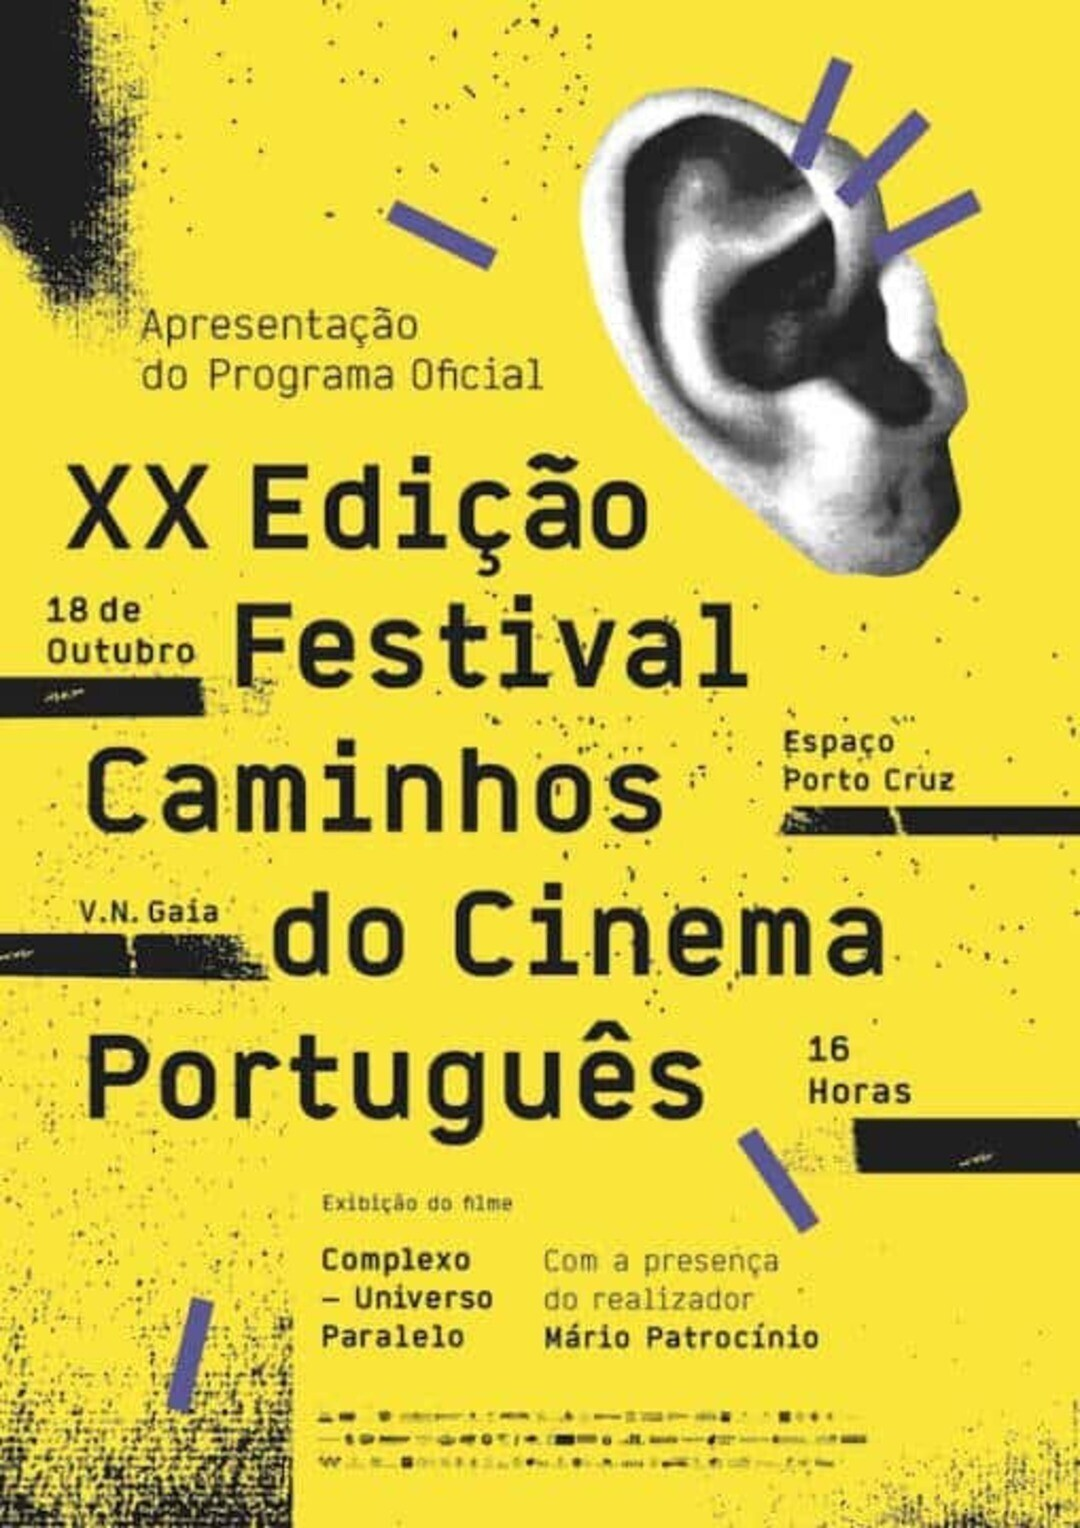 cartaz_porto_cruz.jpg